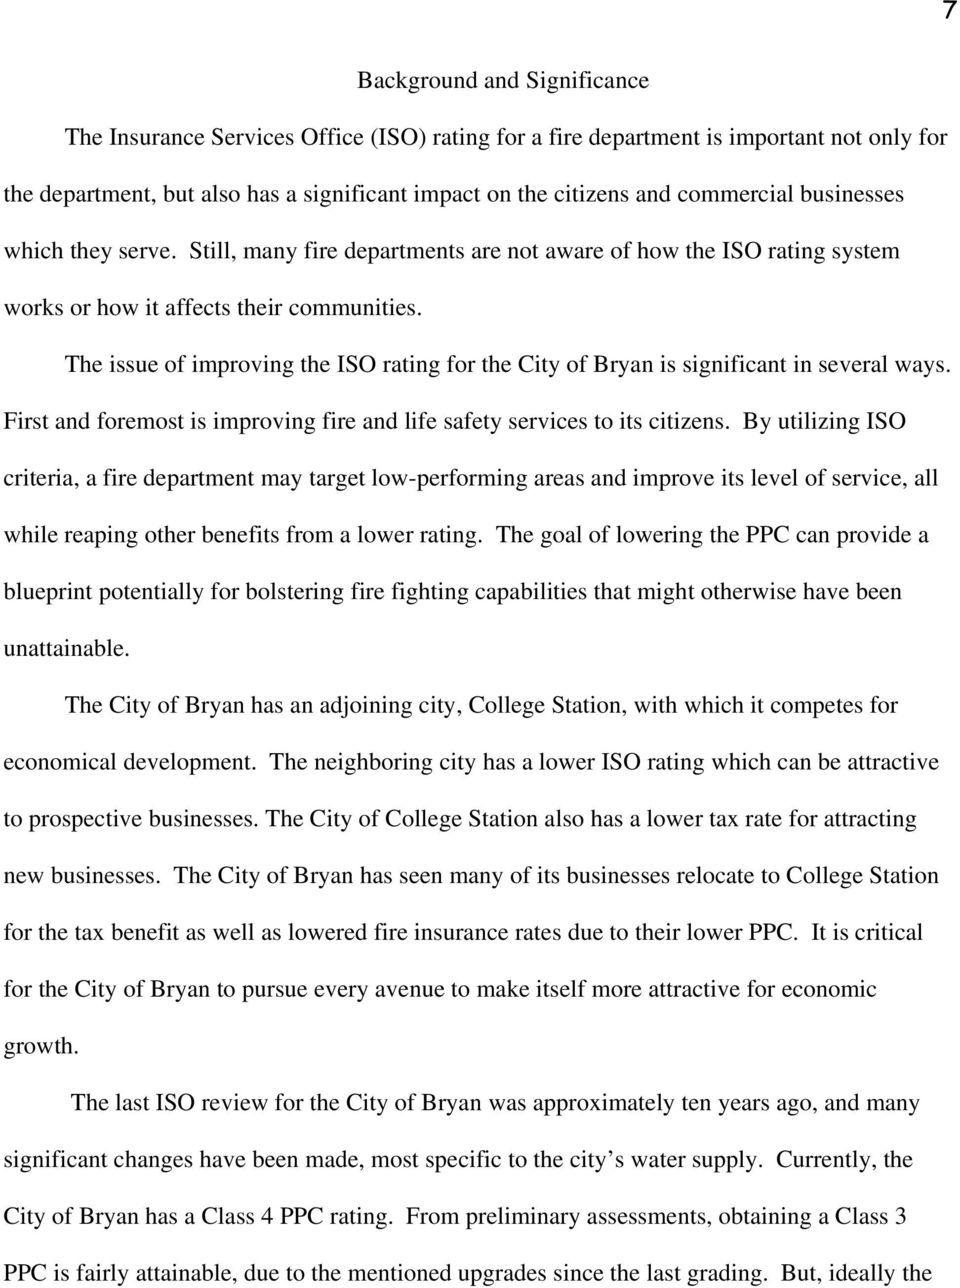 The issue of improving the ISO rating for the City of Bryan is significant in several ways. First and foremost is improving fire and life safety services to its citizens.